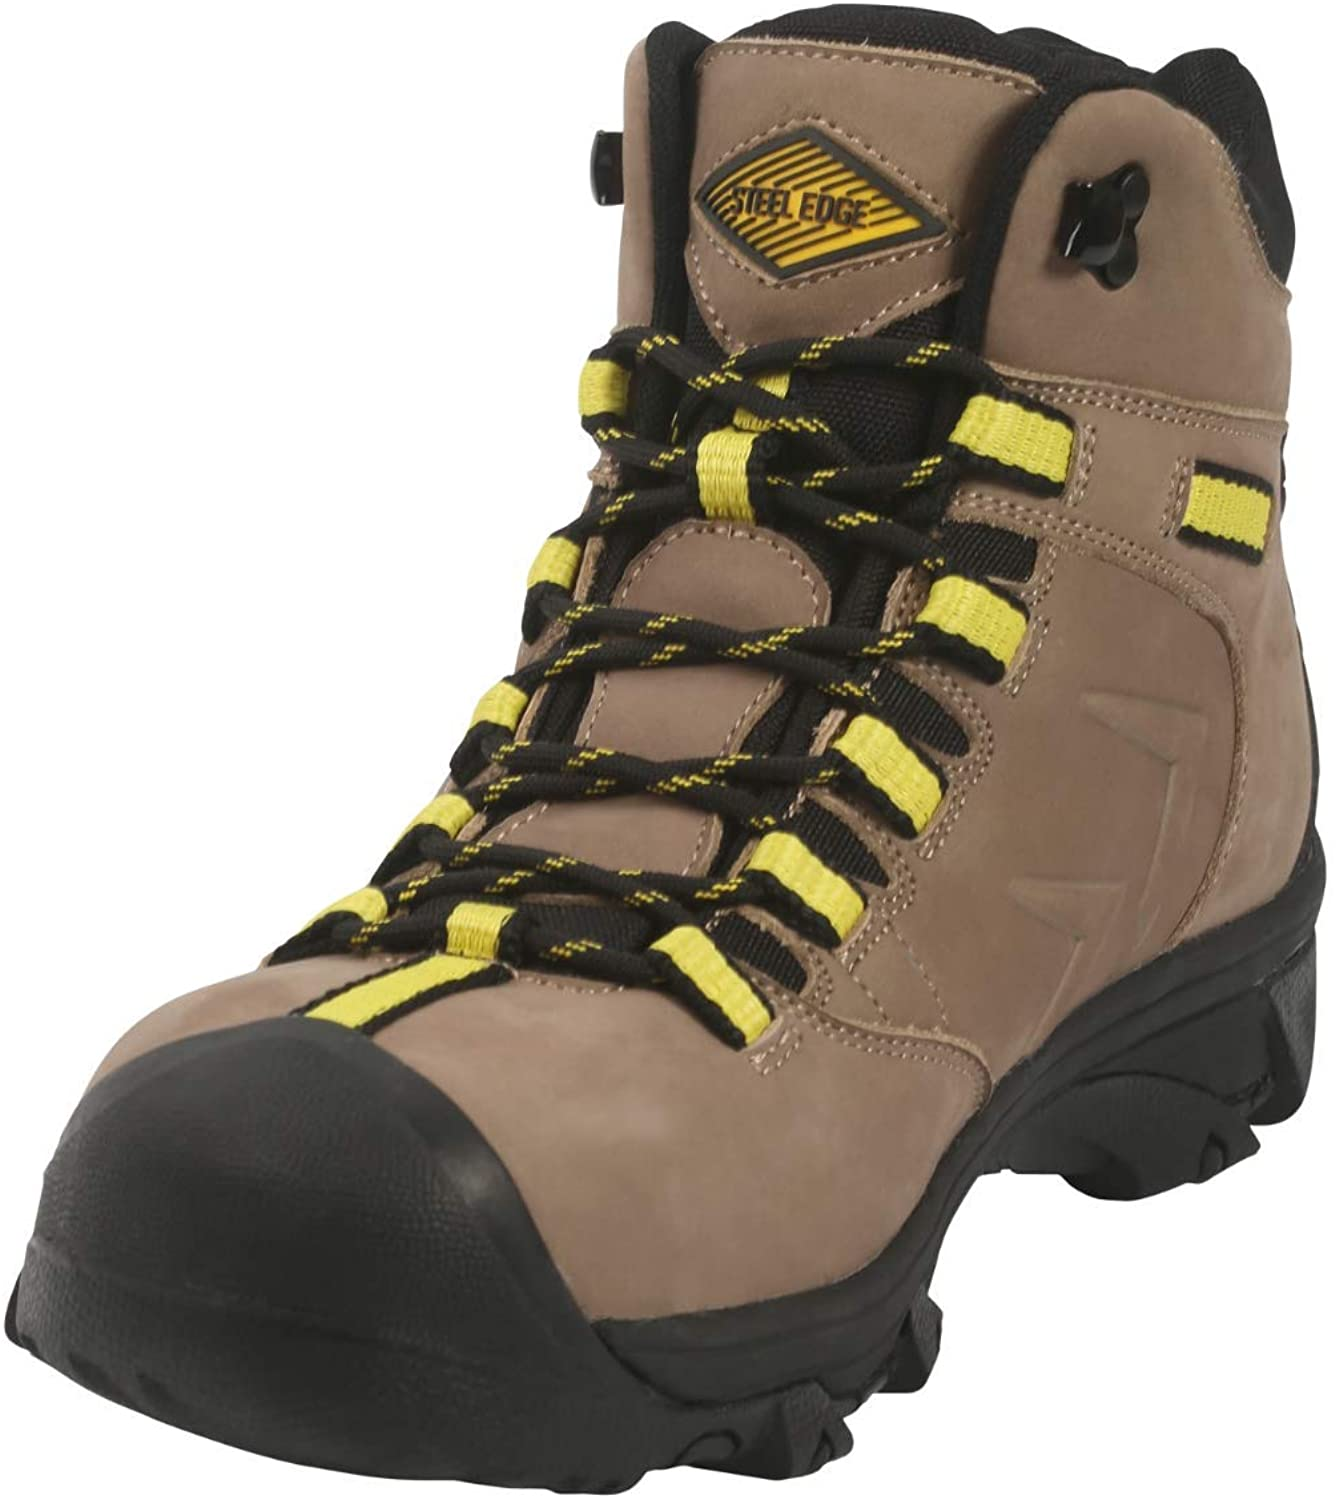 Steel Edge Mens Steel Toe Safety Shoes